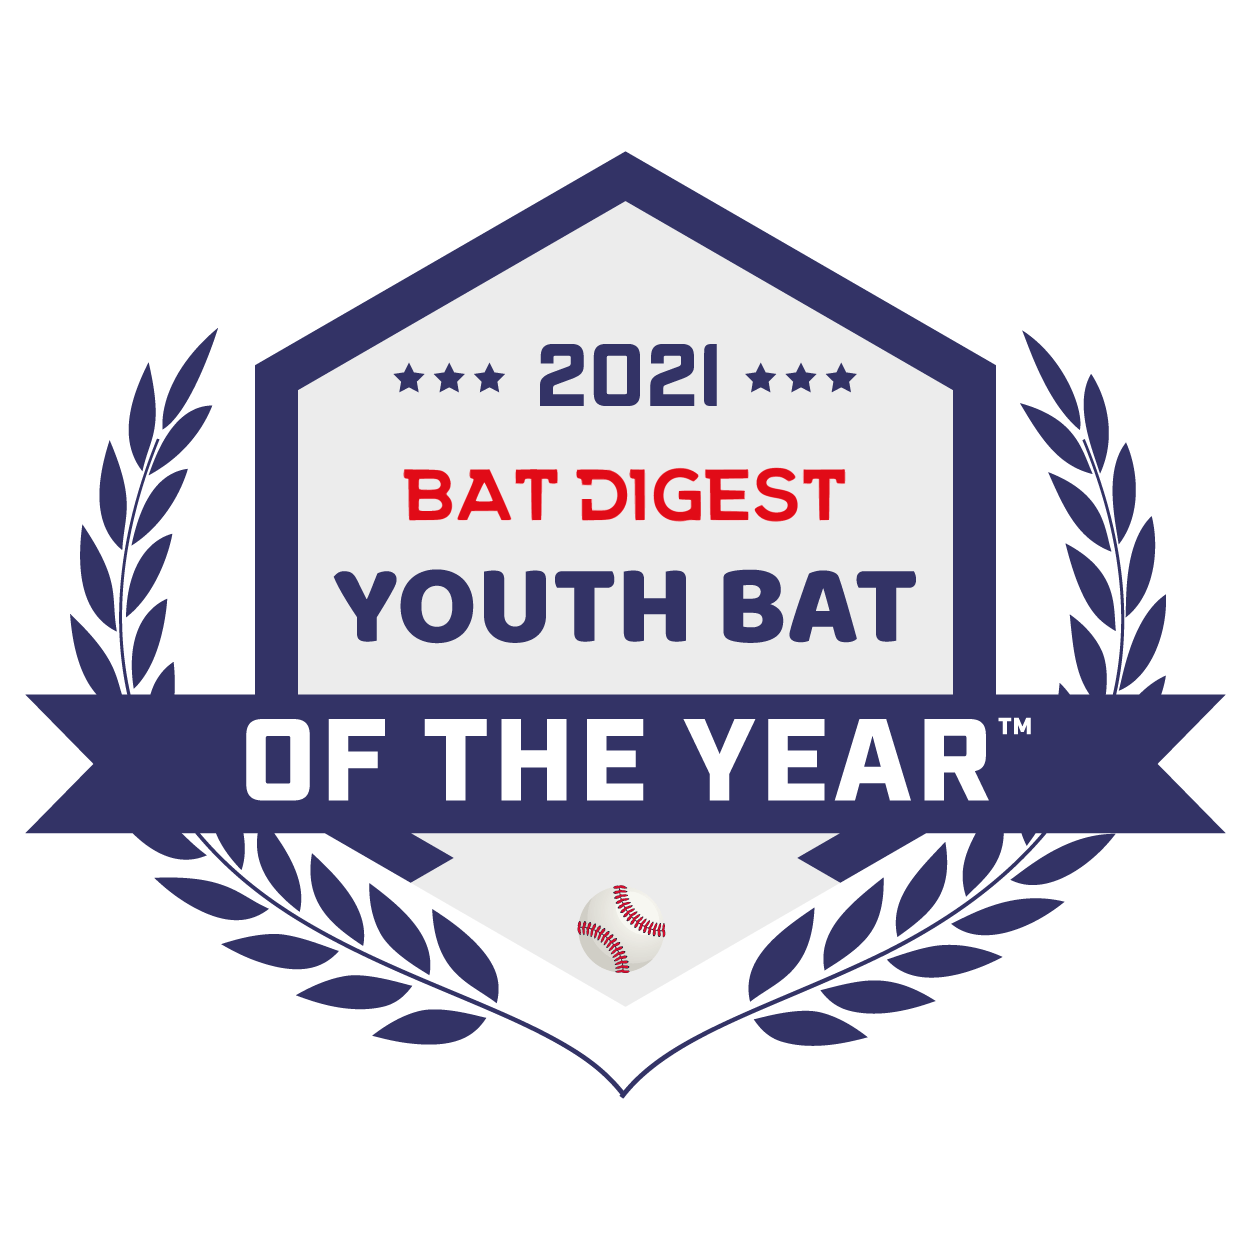 youth bat of the year